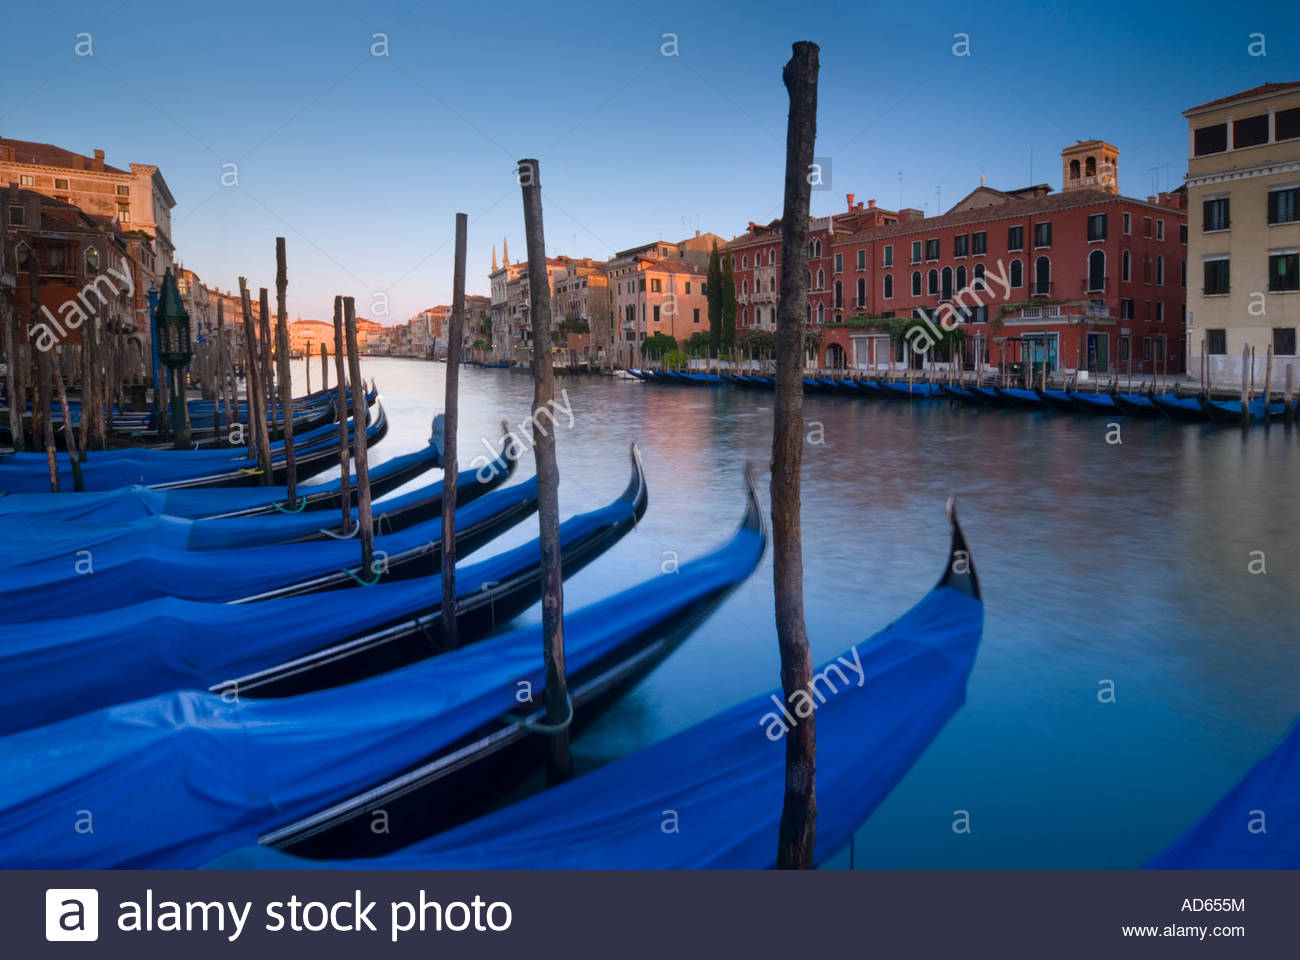 Gondolas line the Grand Canal, Venice, Italy Stock Photo